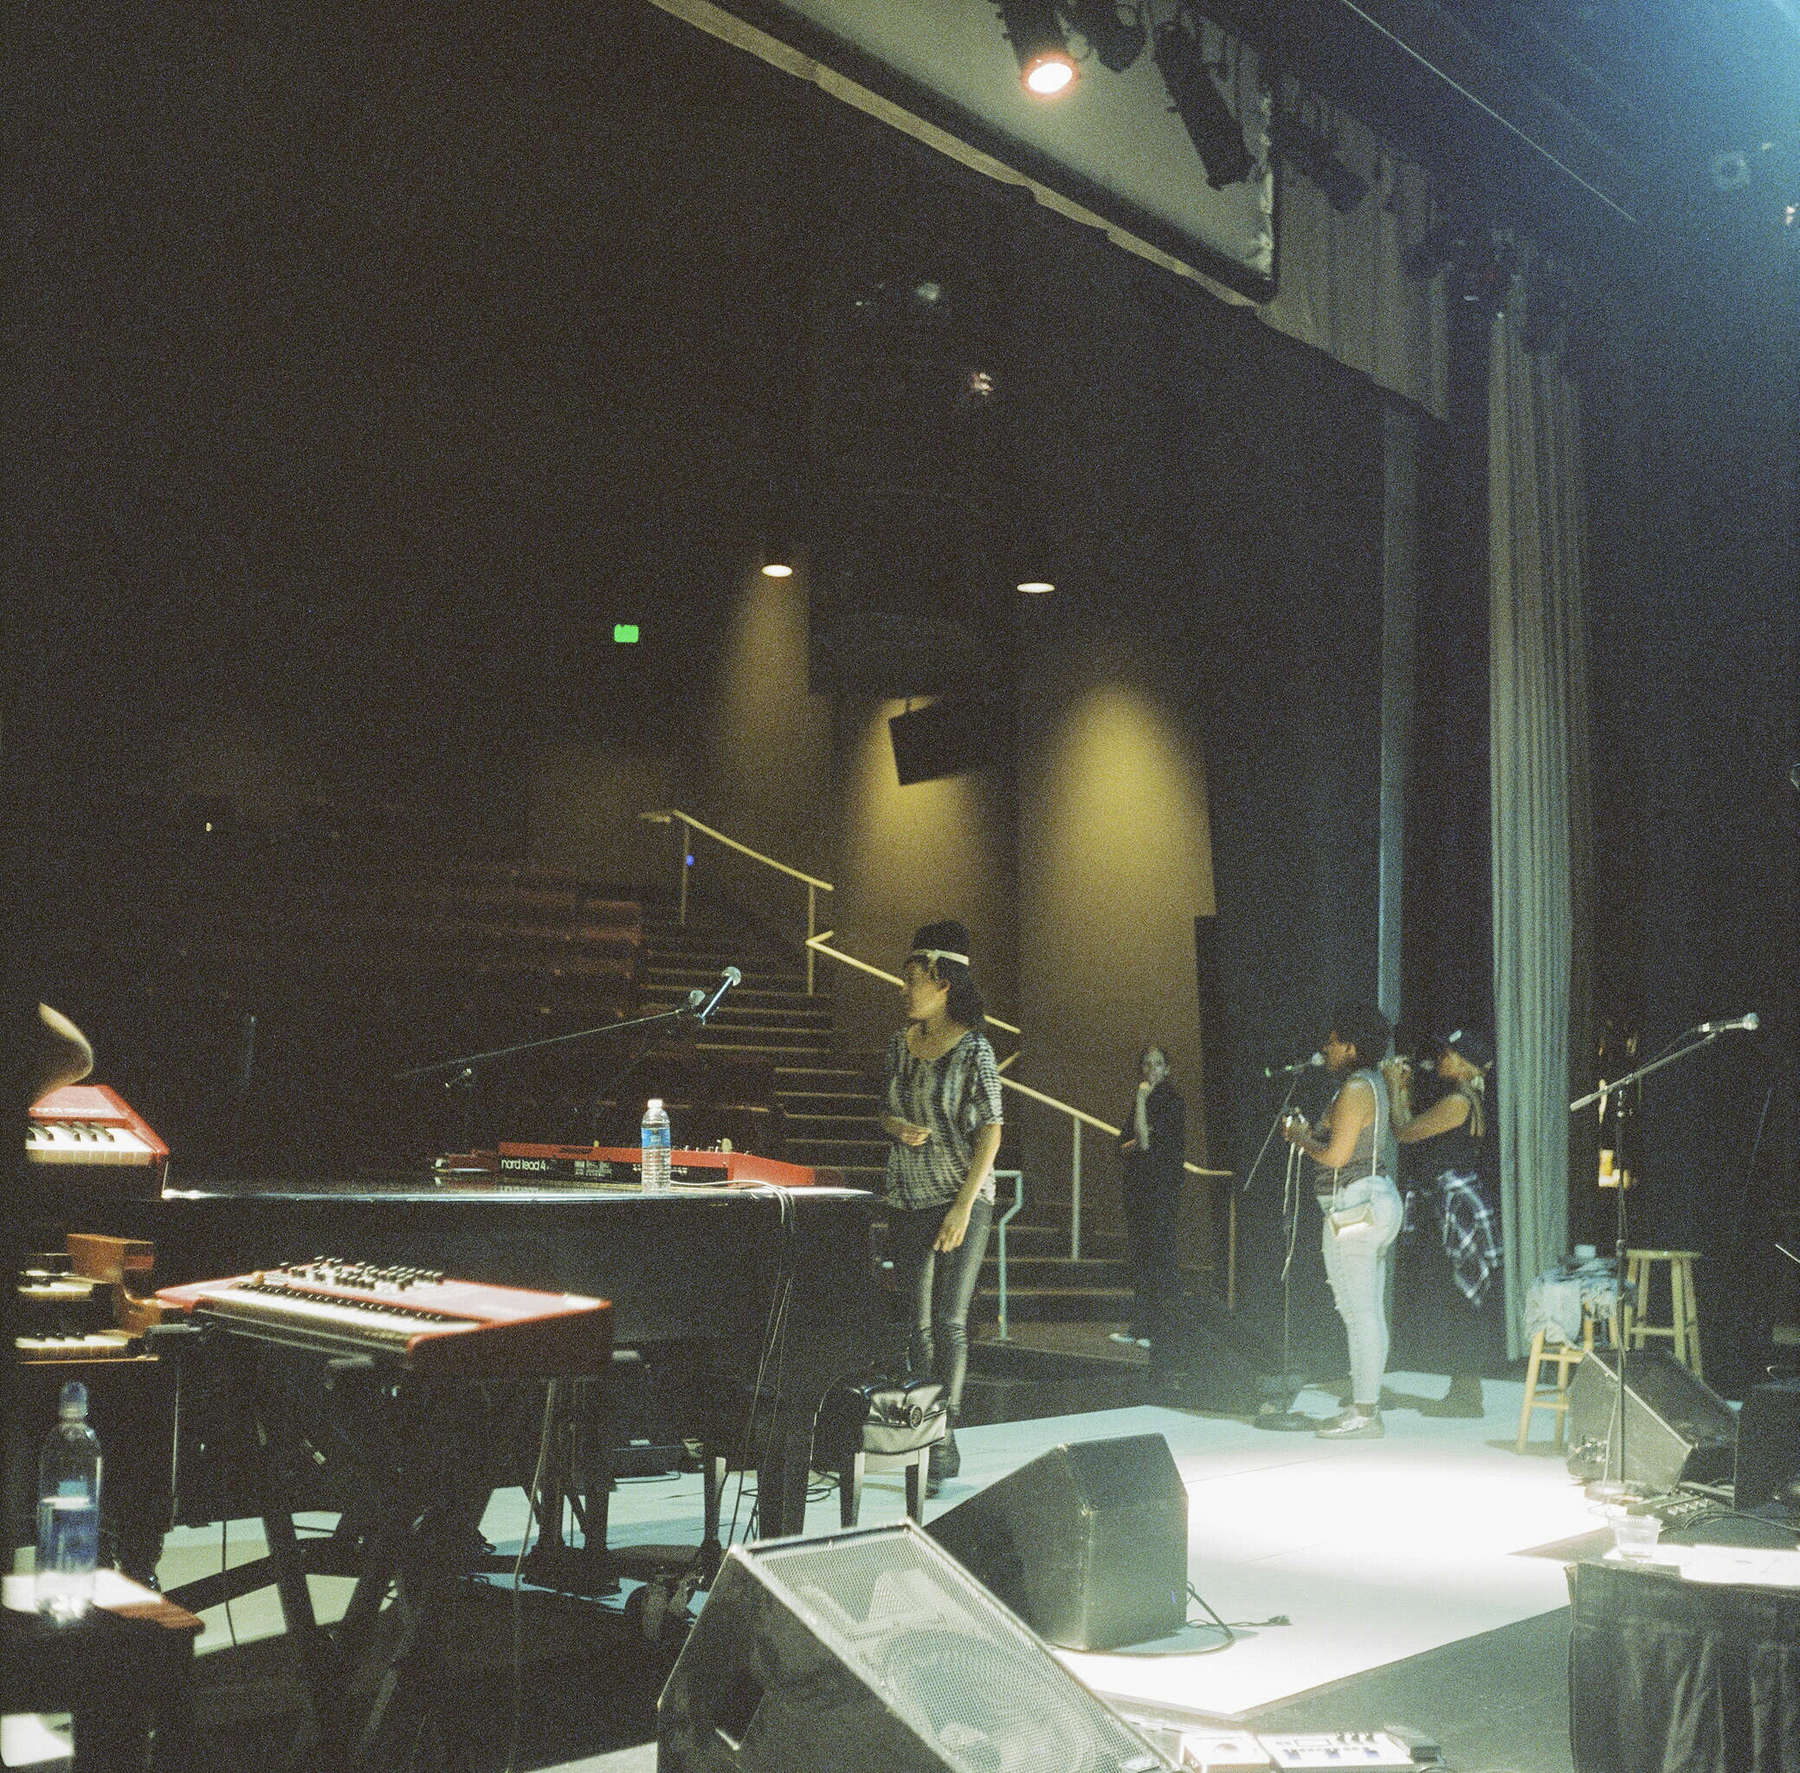 Sound check before concert